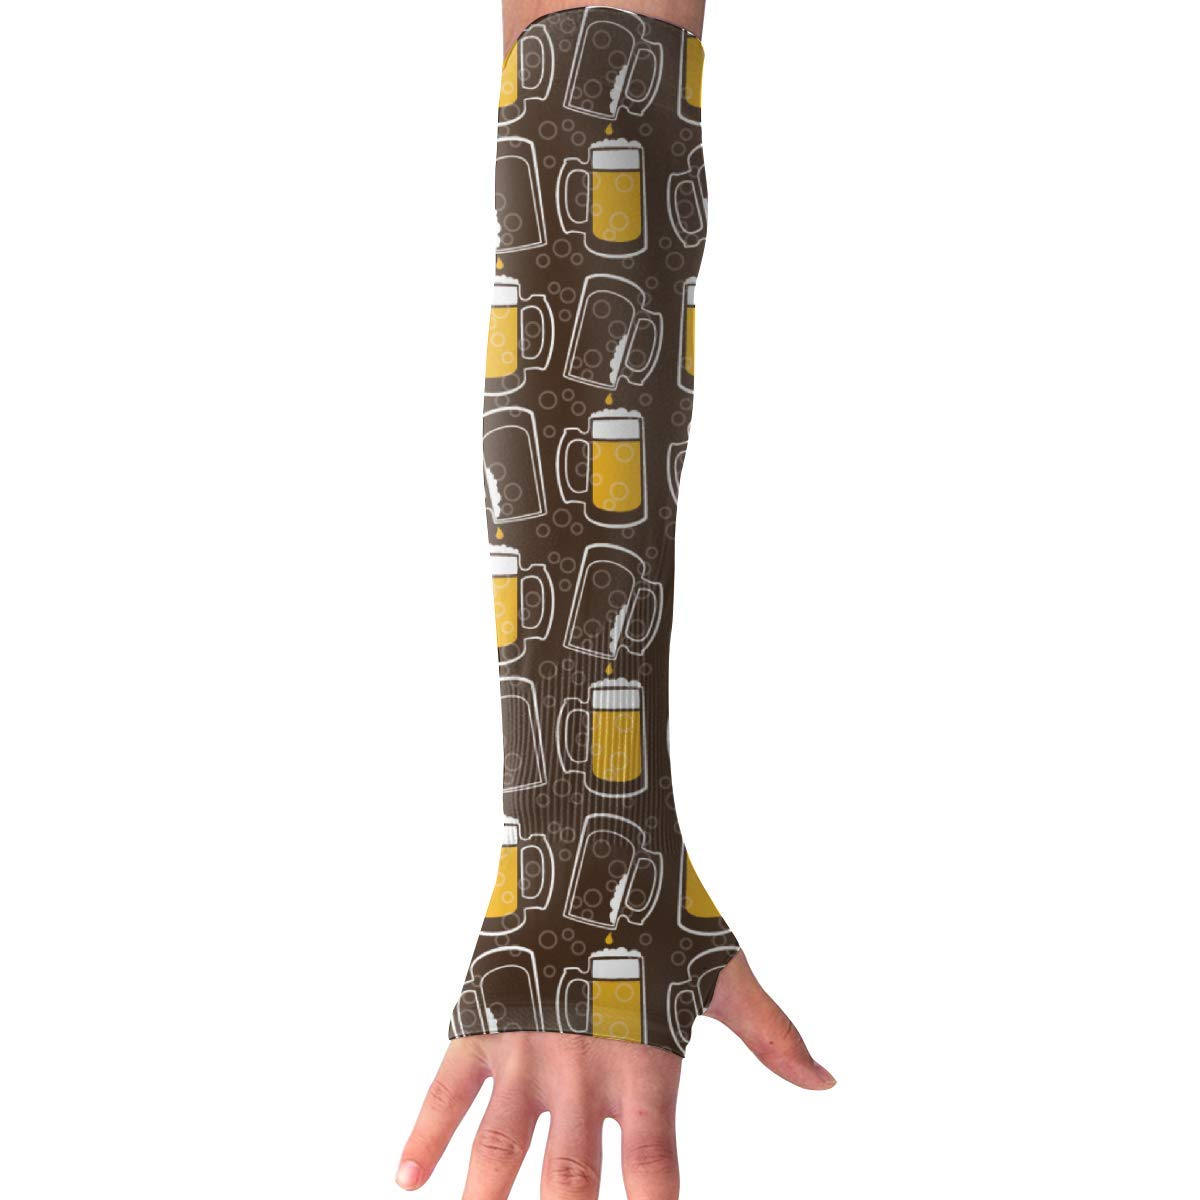 d35baeb628 Get Quotations · ZGZGZ Unisex Sports Arm Sleeves Beer Pattern Travel UV  Protection Comfortable Sleeves Outdoor Riding,Fishing